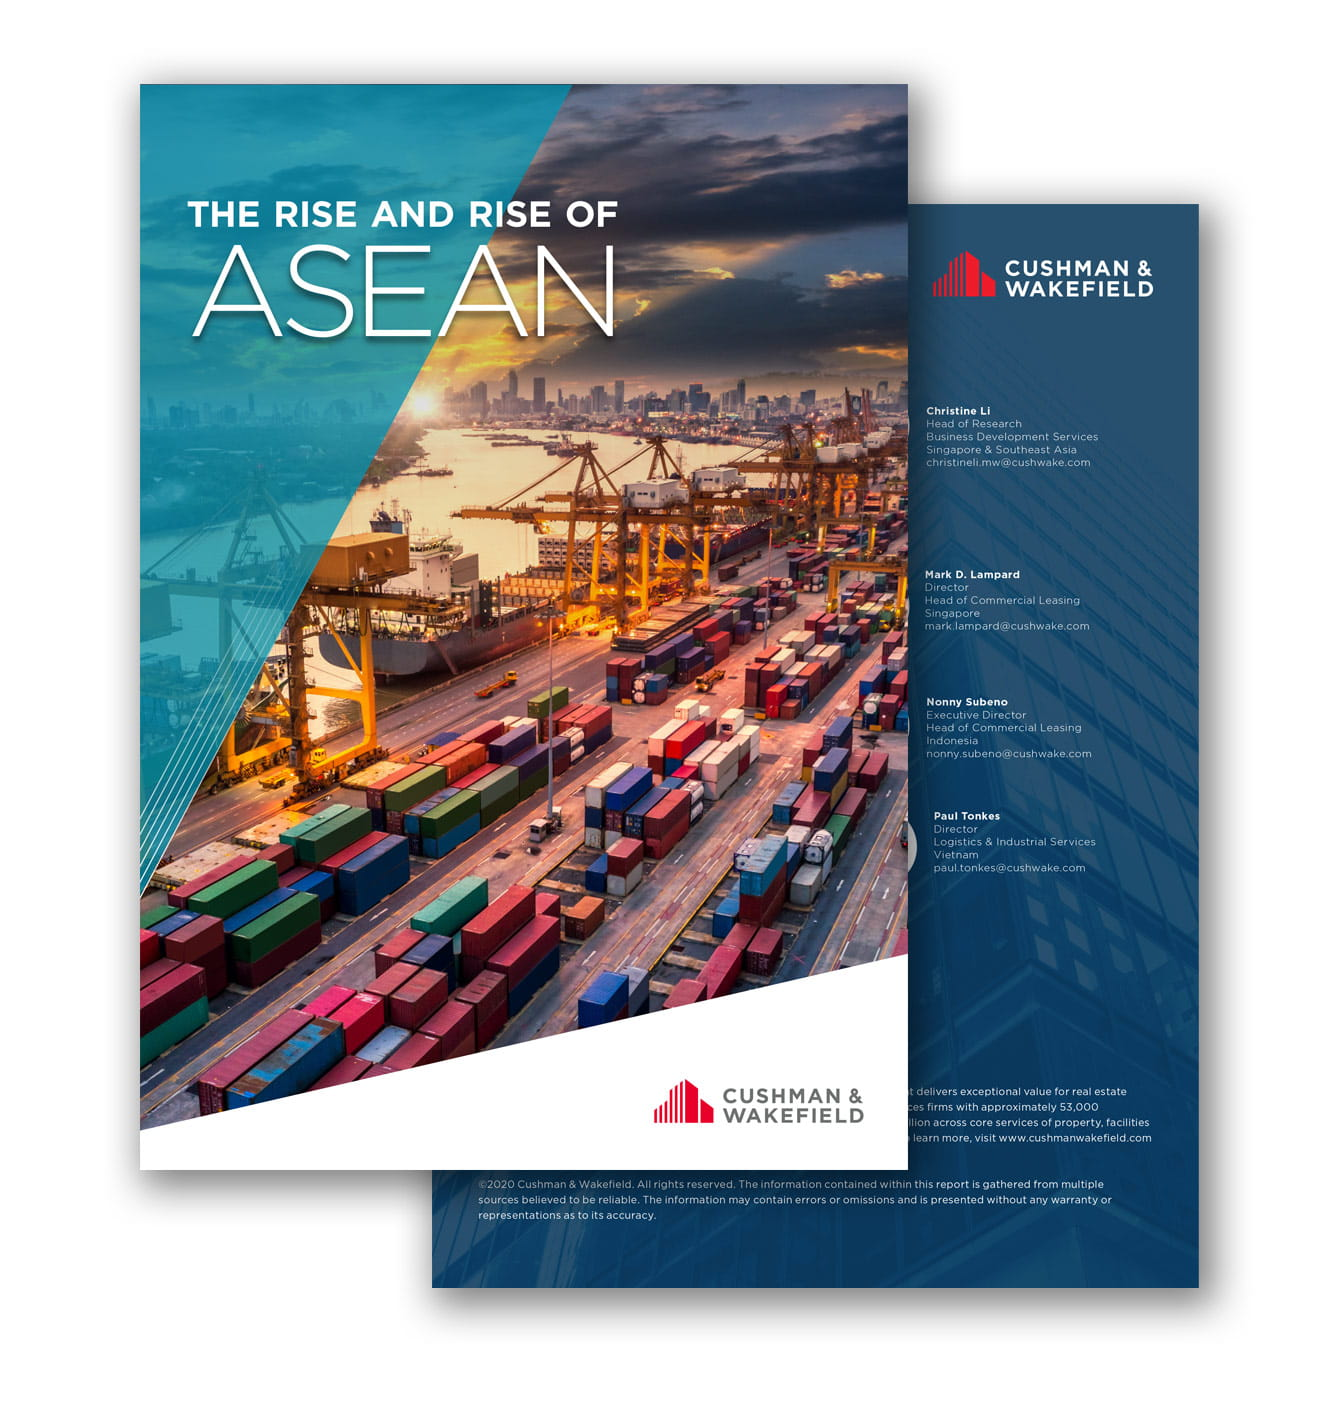 The Rise and Rise of ASEAN